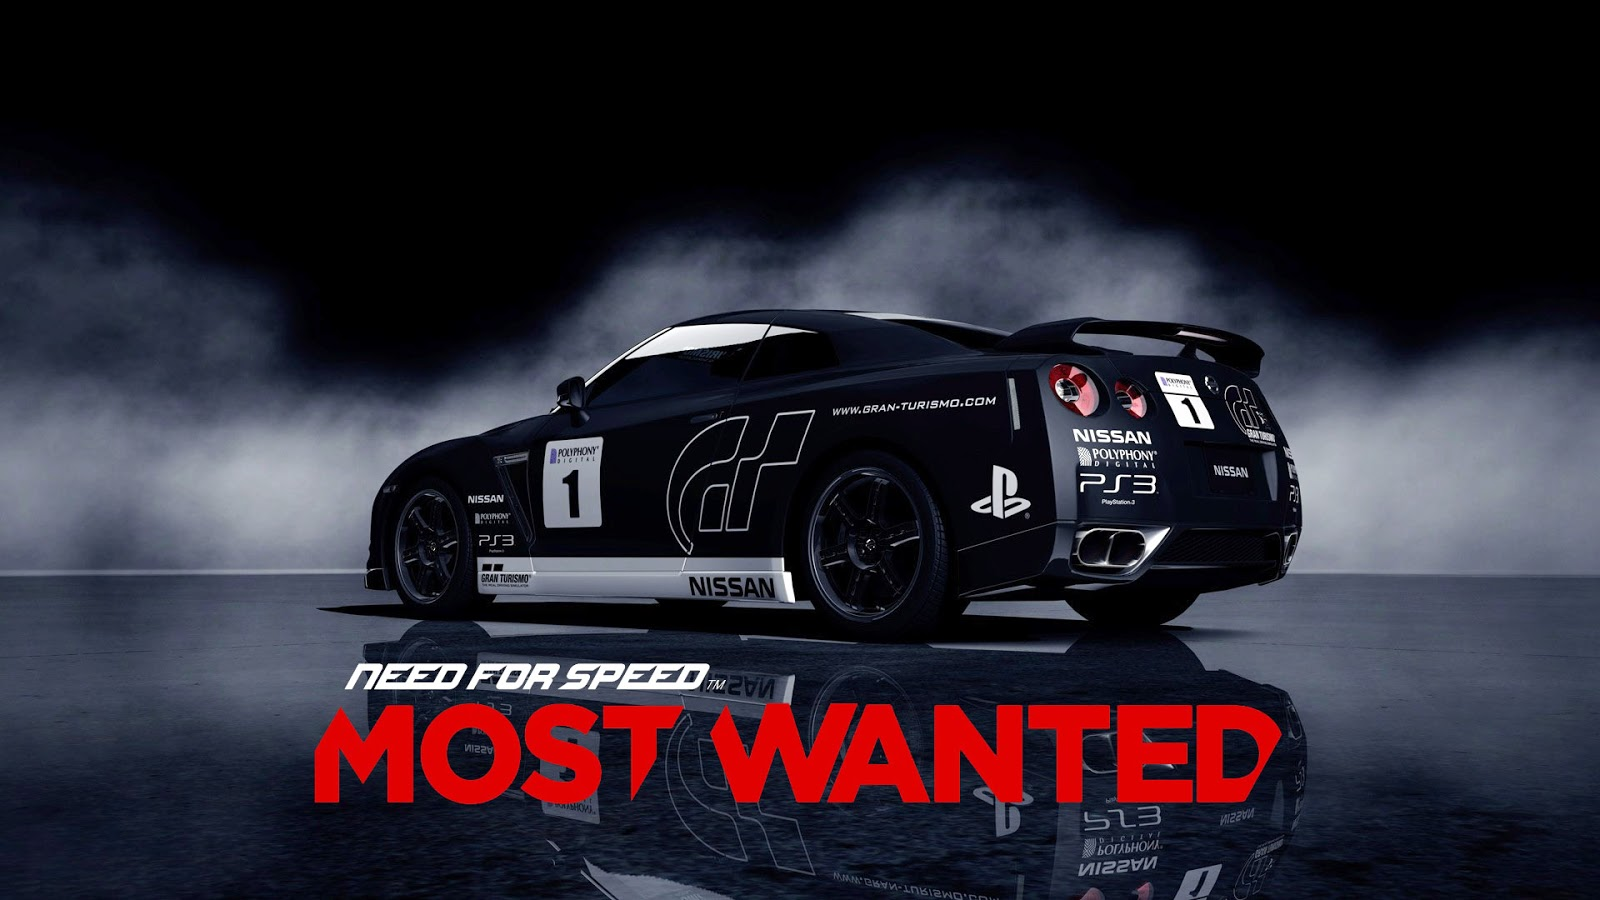 Need Speed Most Wanted 2012 مضغوطة,بوابة 2013 Need-for-Speed-Most-